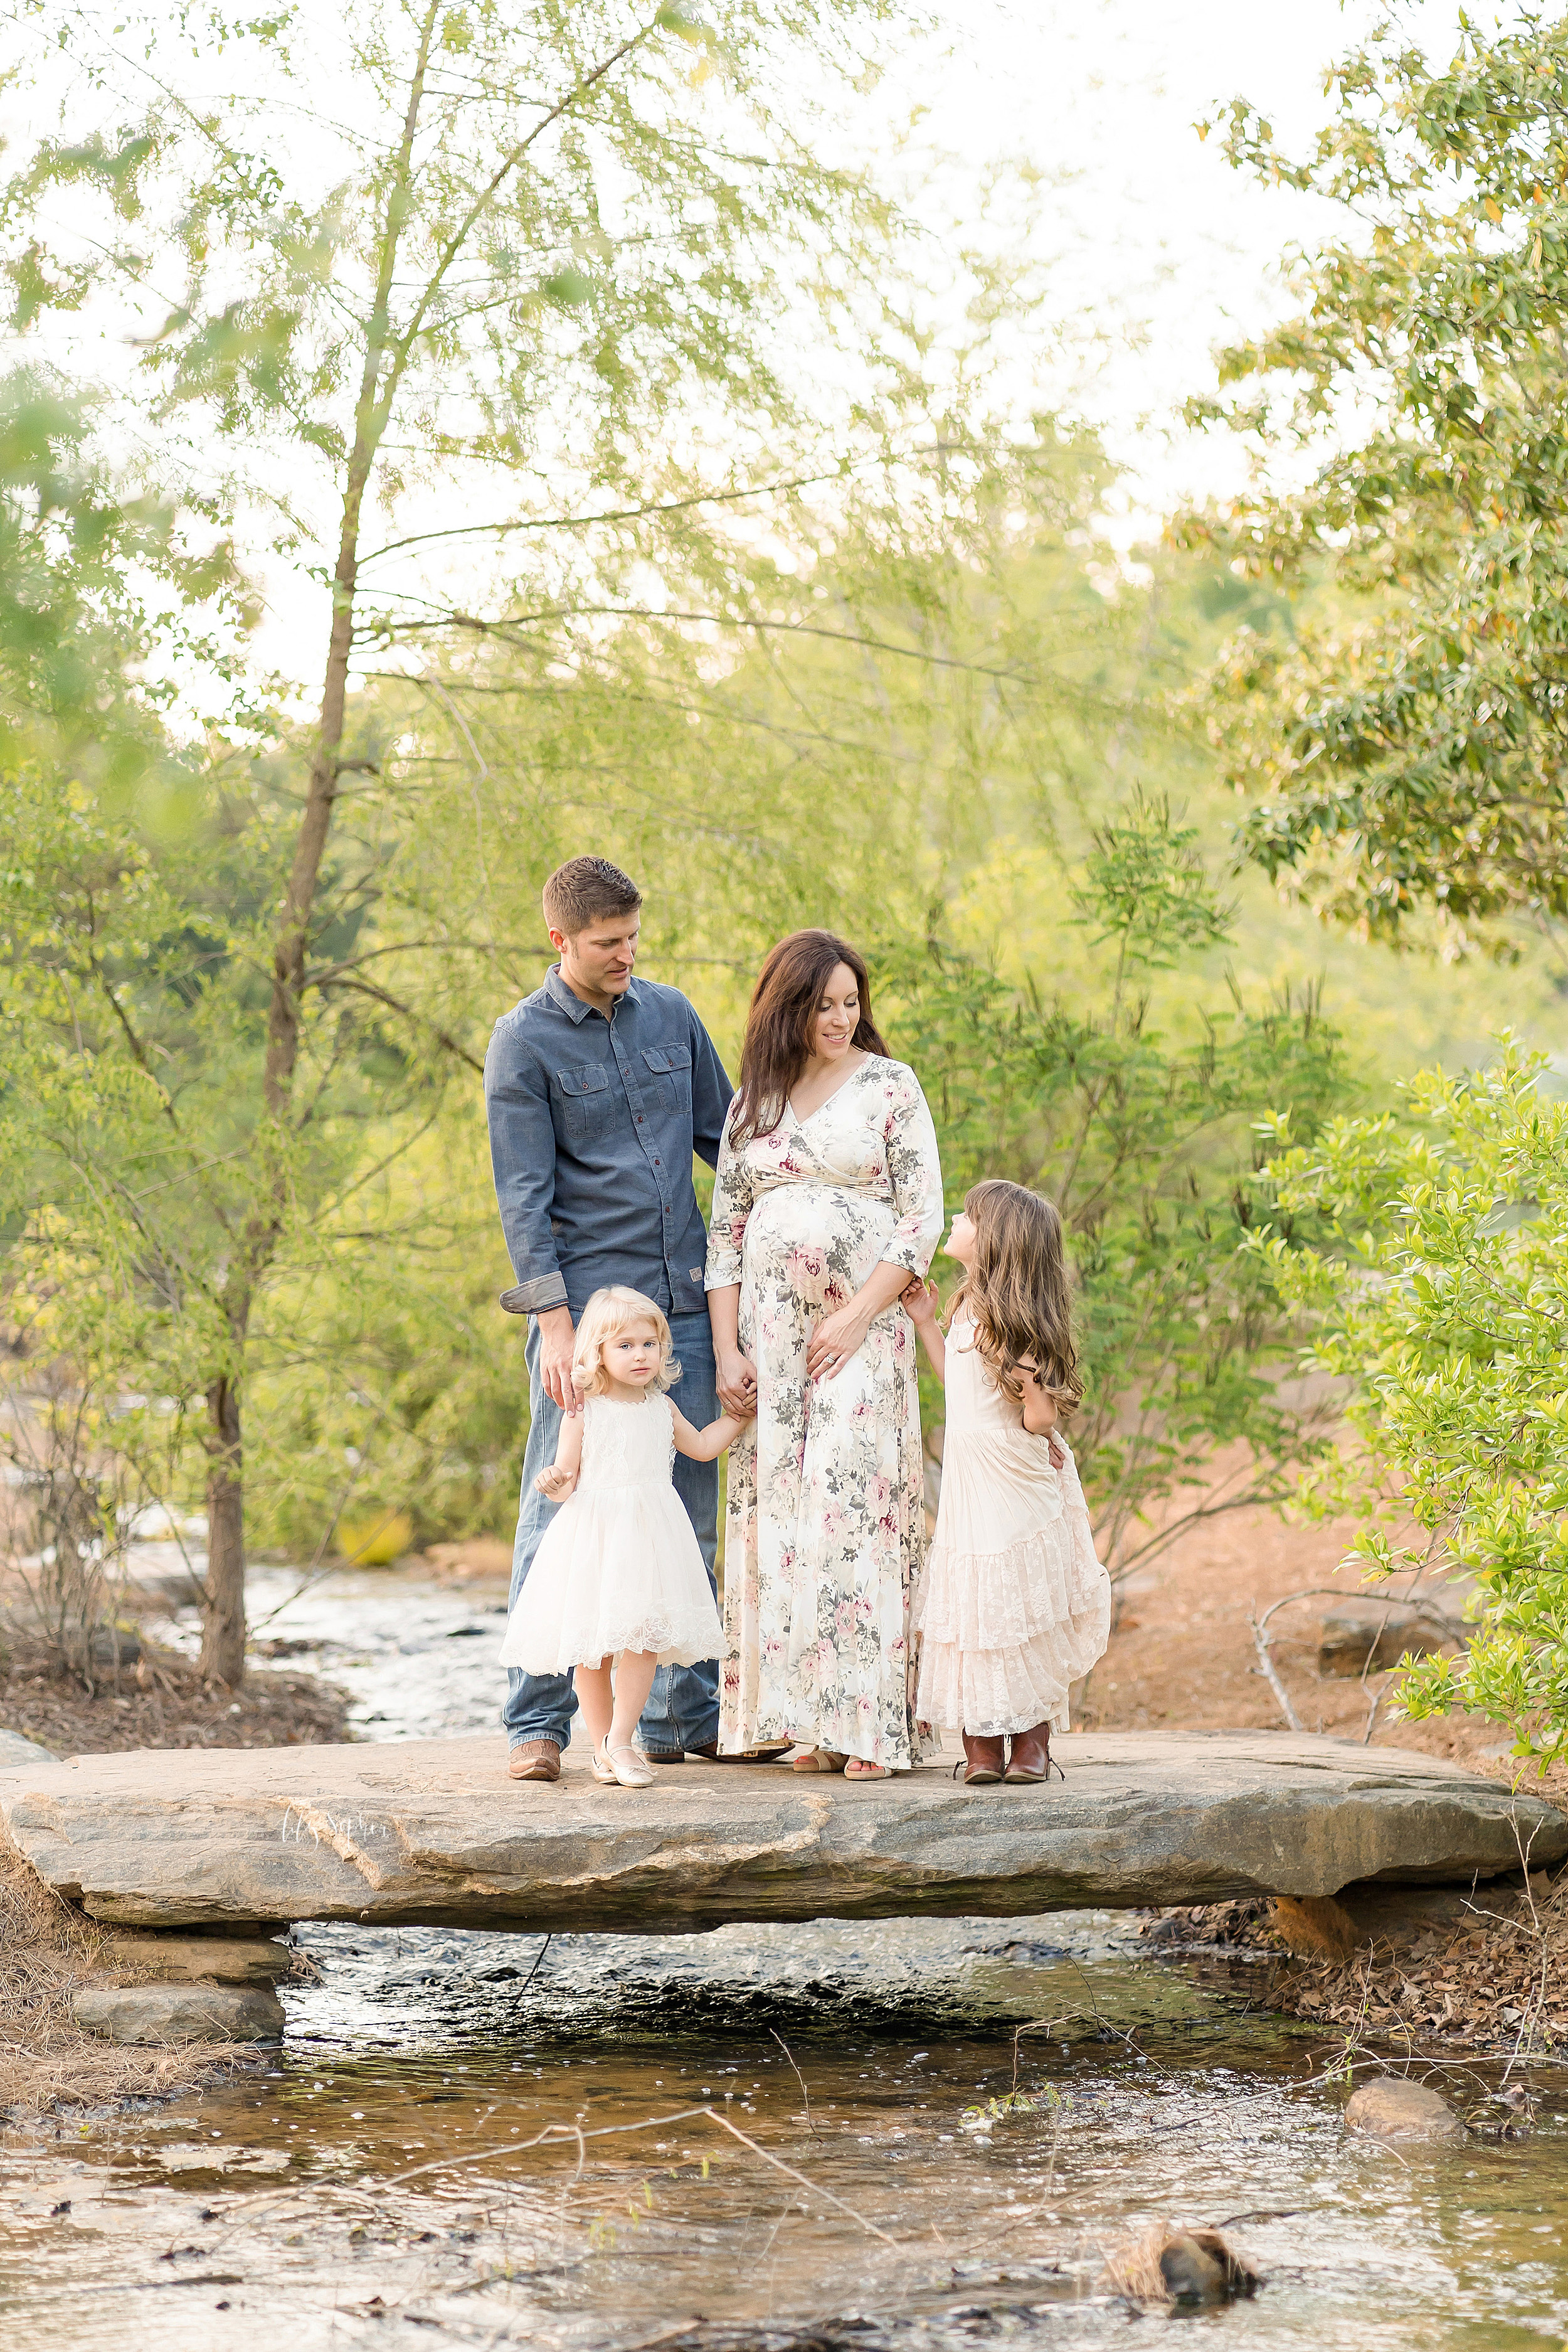 atlanta-brookhaven-decatur-candler-park-sandy-springs-buckhead-virginia-highlands-west-end-decatur-lily-sophia-photography-family-big-sisters-expecting-newborn-baby-couples-family-maternity-outdoor-session_1632.jpg